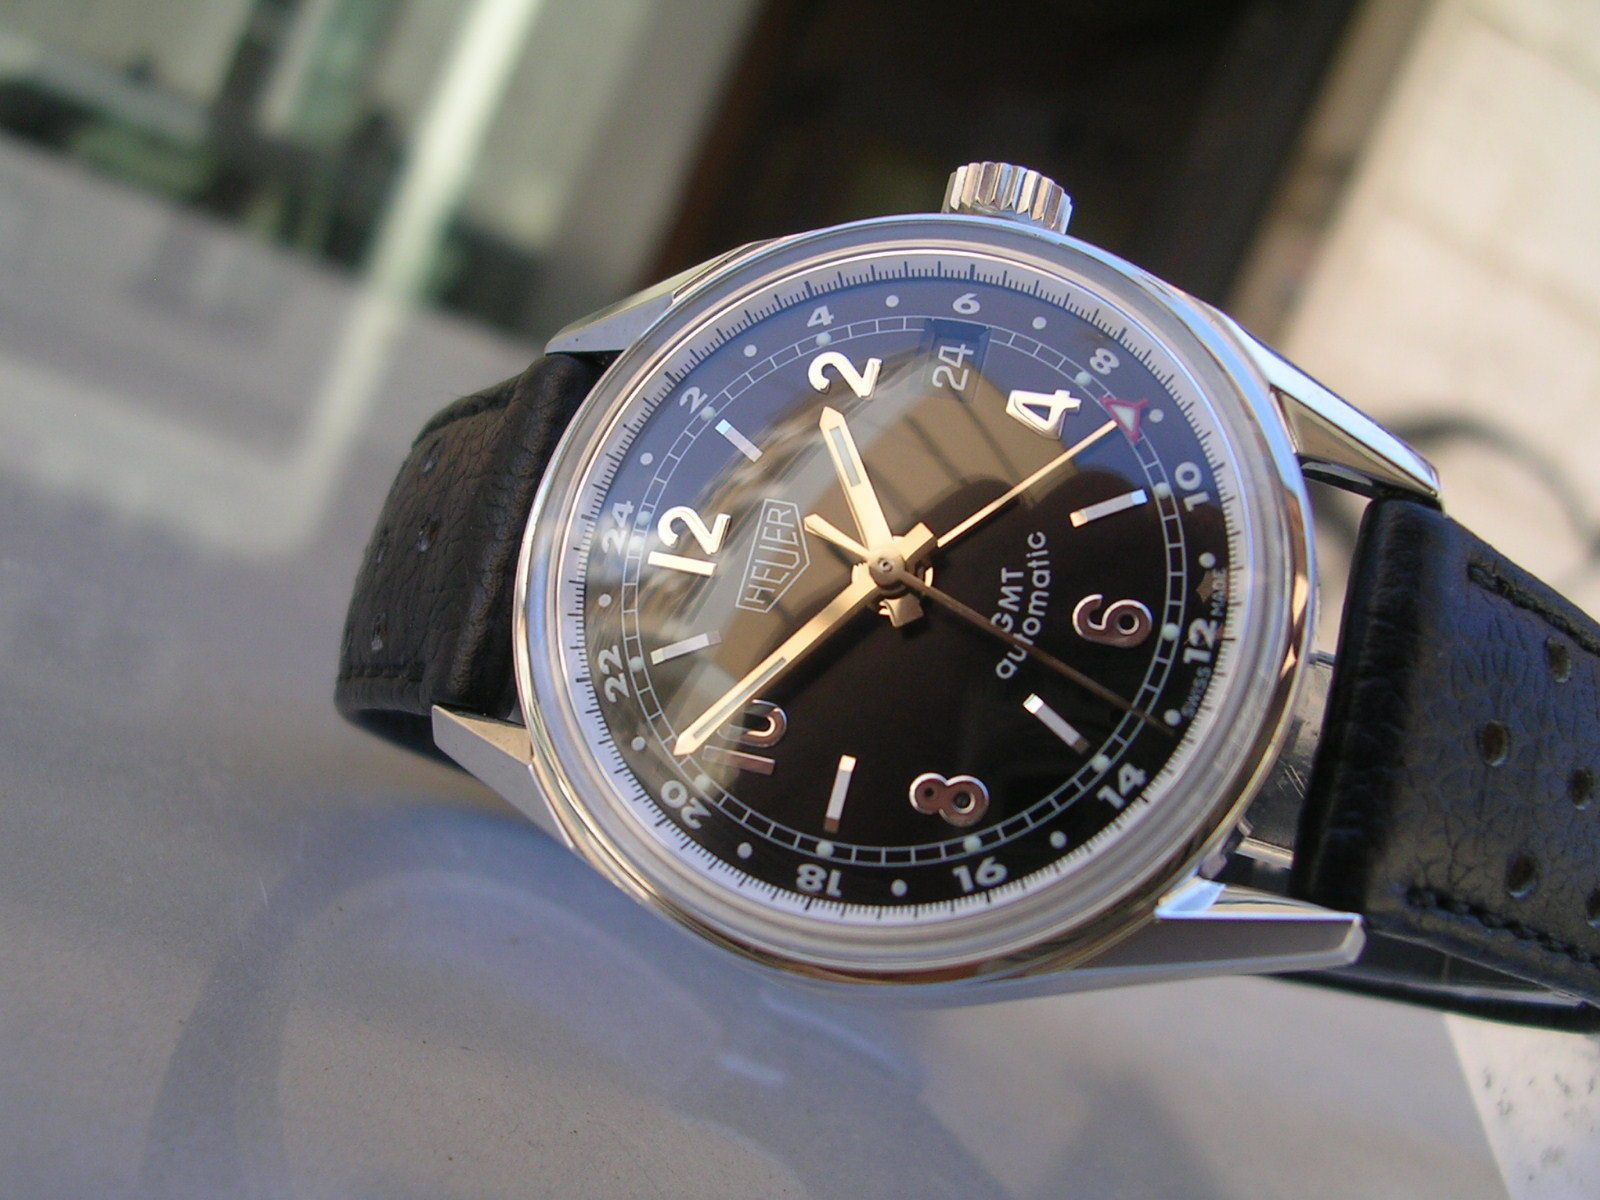 TAG HEUER CARRERA GMT 1964 RE-EDITION WS2113 | Watches ...